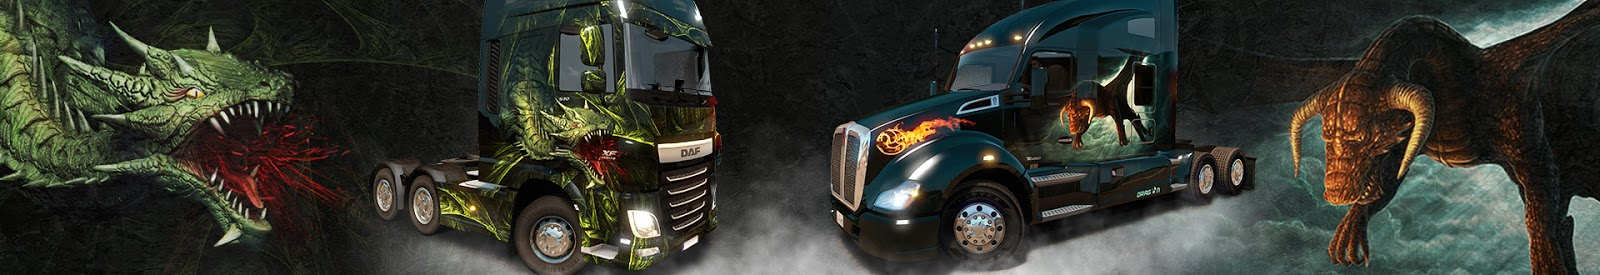 ETS2-20170104_Grand_gift_delivery.jpg